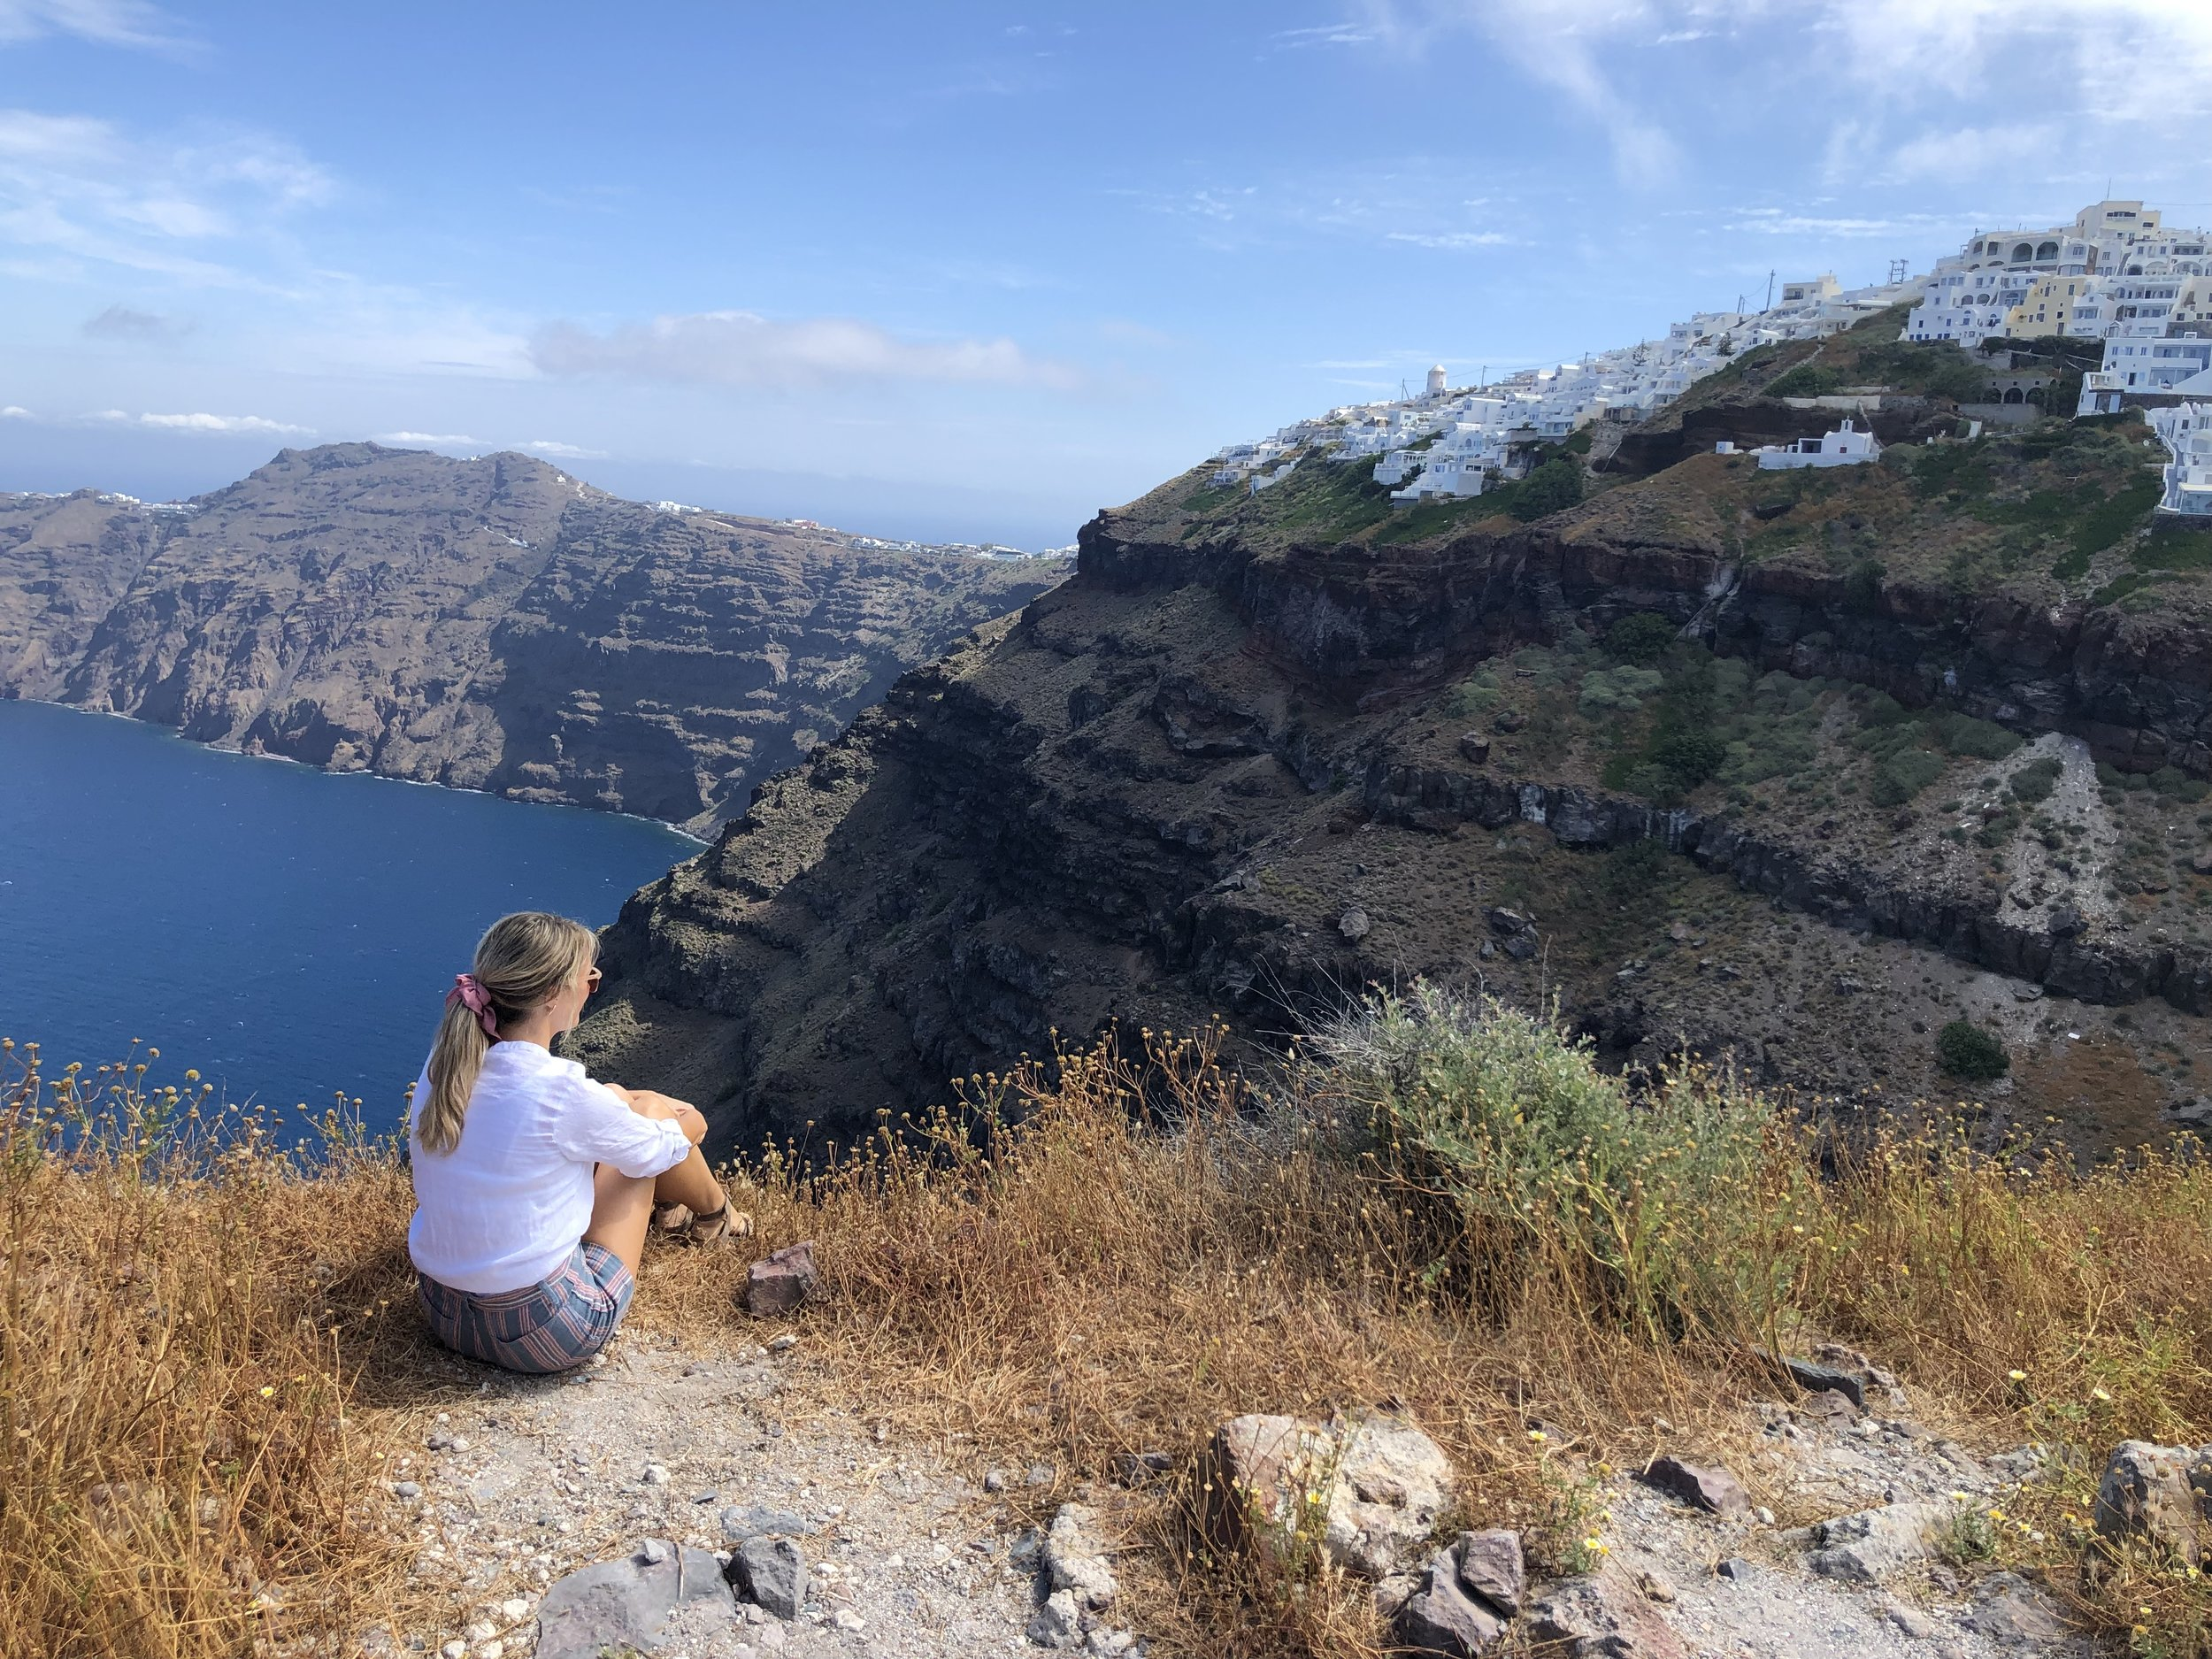 On top of Skaros rock. This is not for littles or people with limited mobility. We had to scale about 15 feet of rock that was at the top of a huge cliff. I'm fairly afraid of heights and it took a lot of self-talk to get me to the top. Worth it, though. The view of Santorini is priceless.